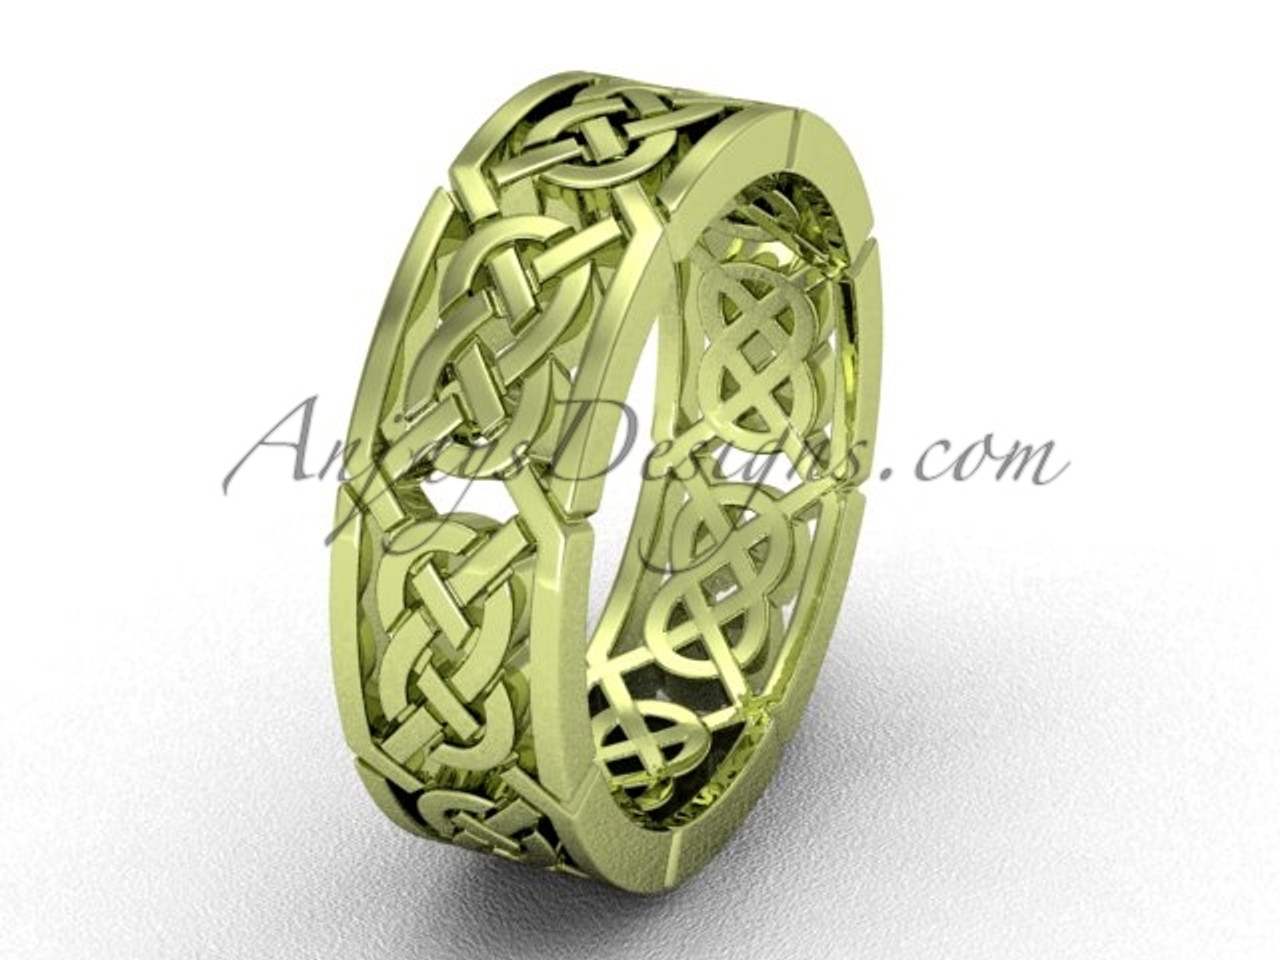 Irish Wedding Rings.Triquetra Engagement Ring Rings 14kt Yellow Gold Irish Wedding Band Ct7430g